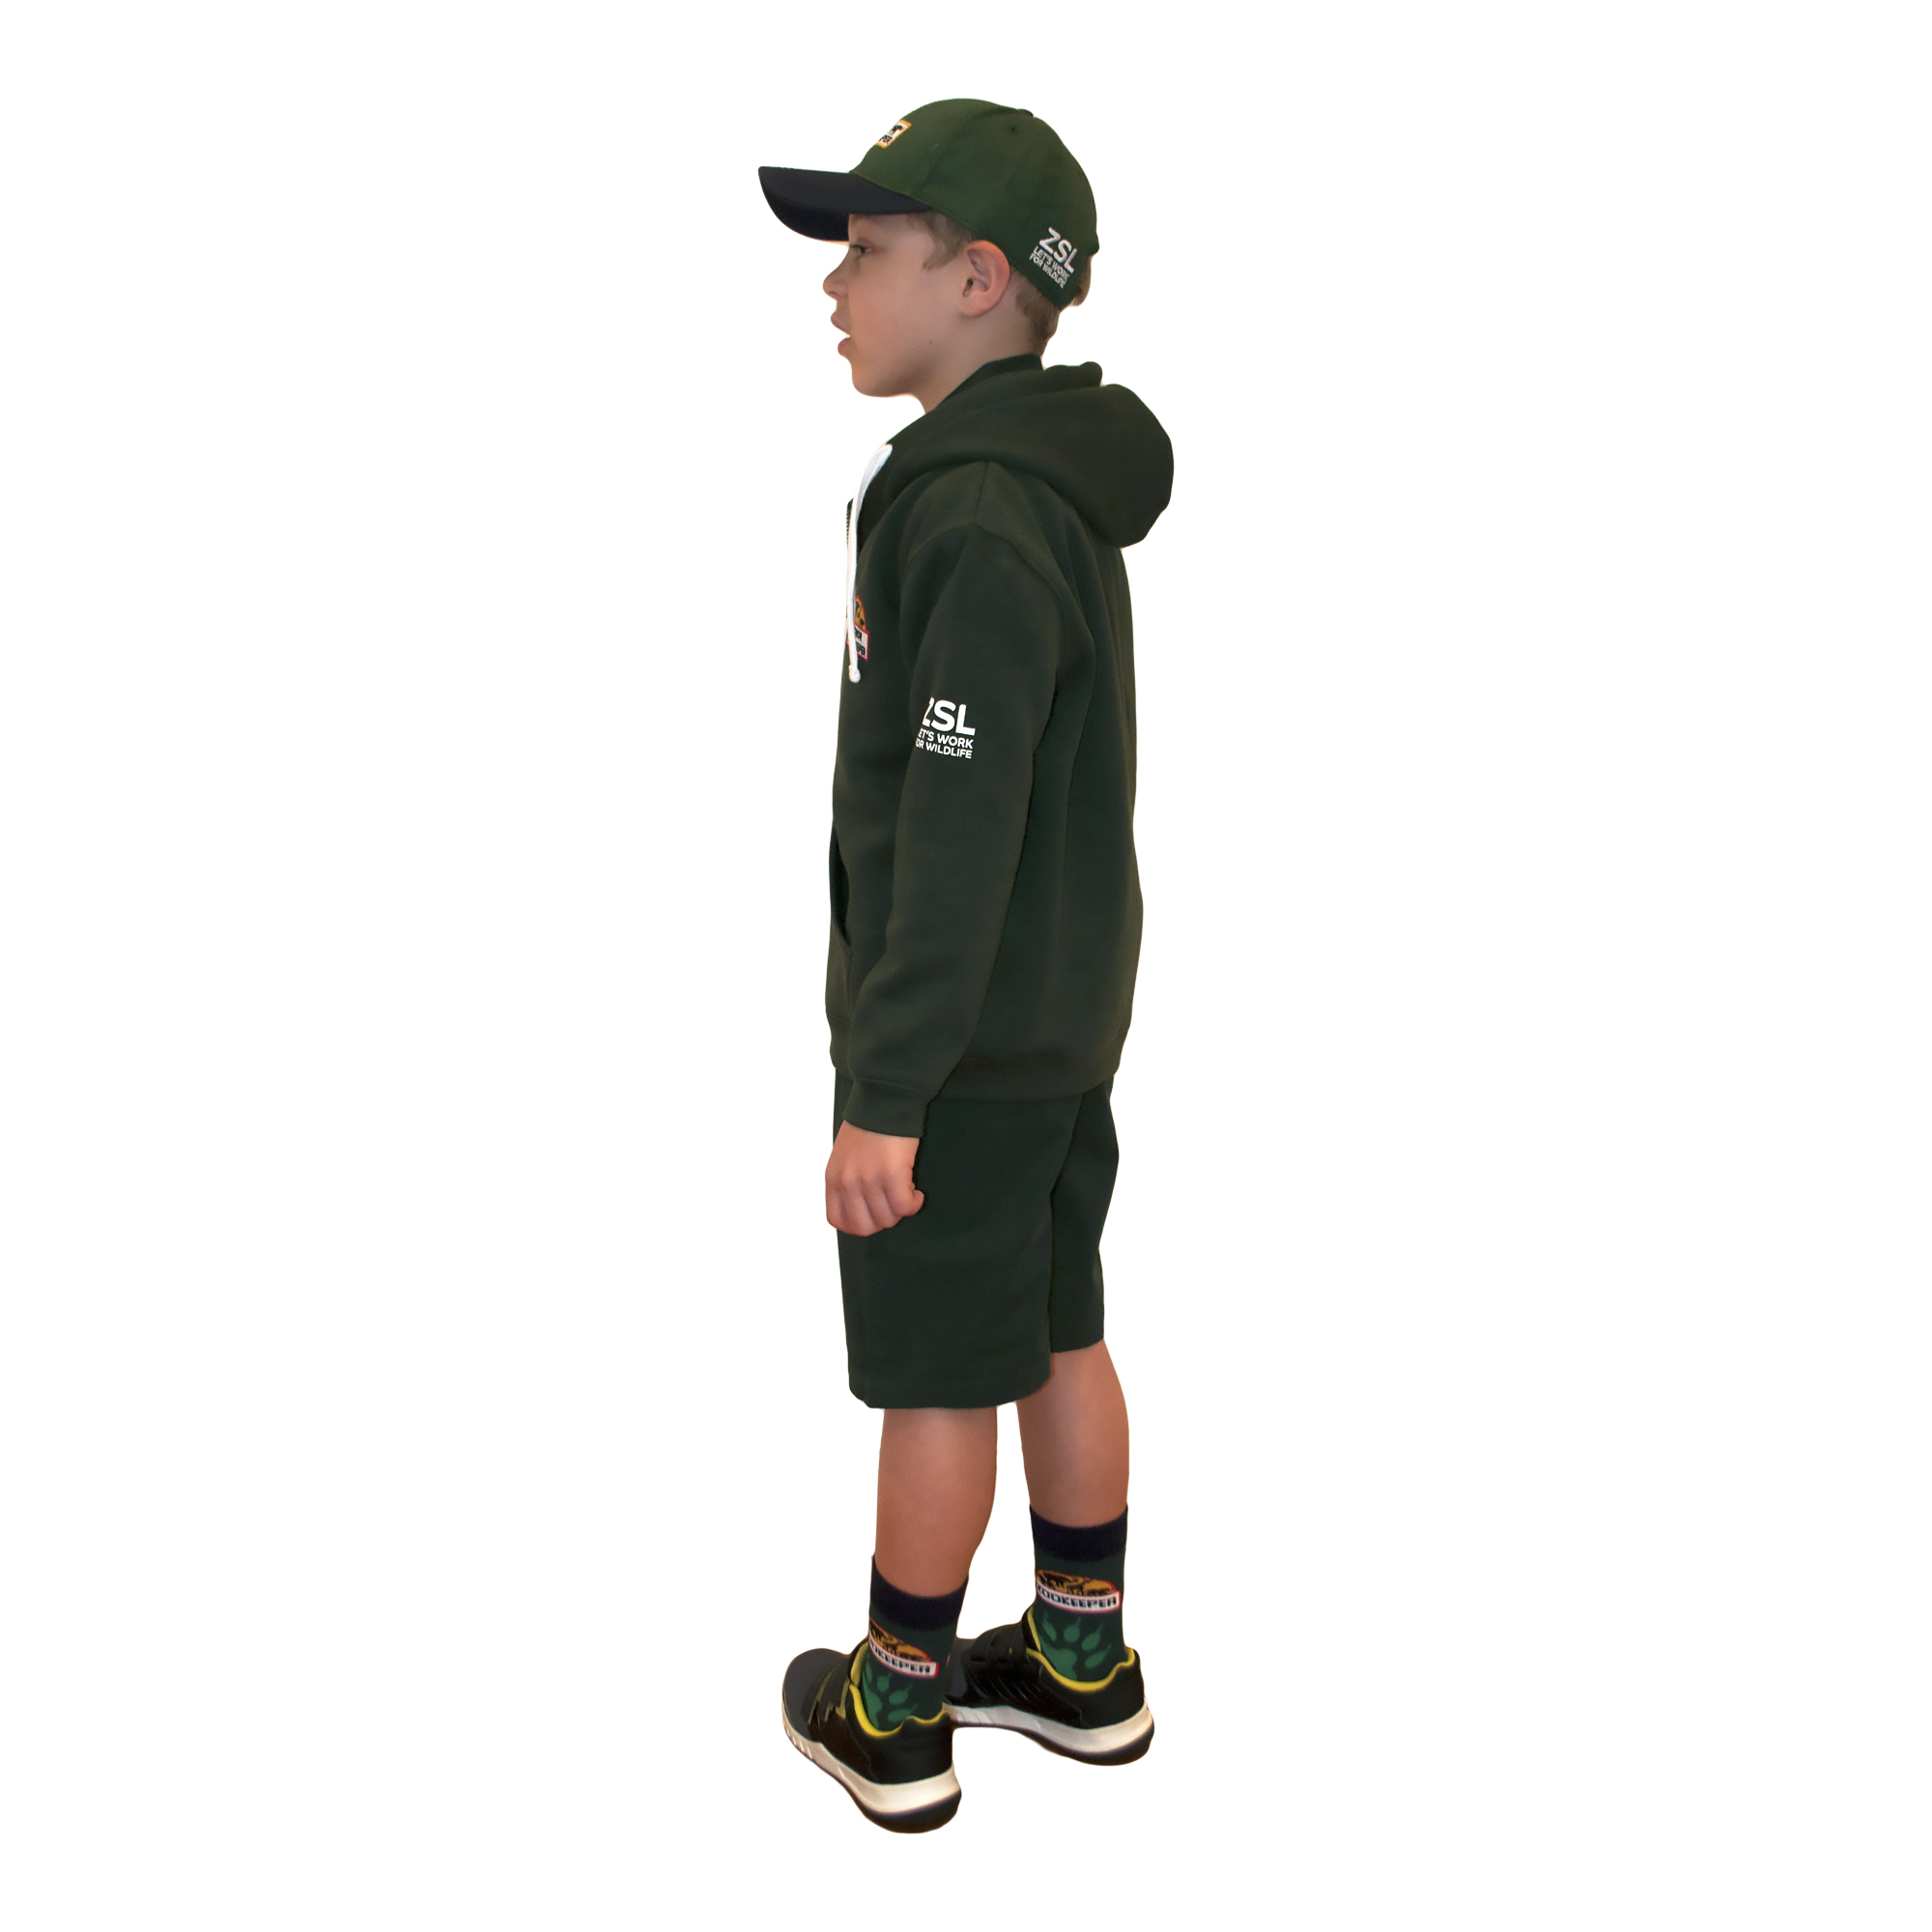 Junior Zoo Keeper hoodie, green